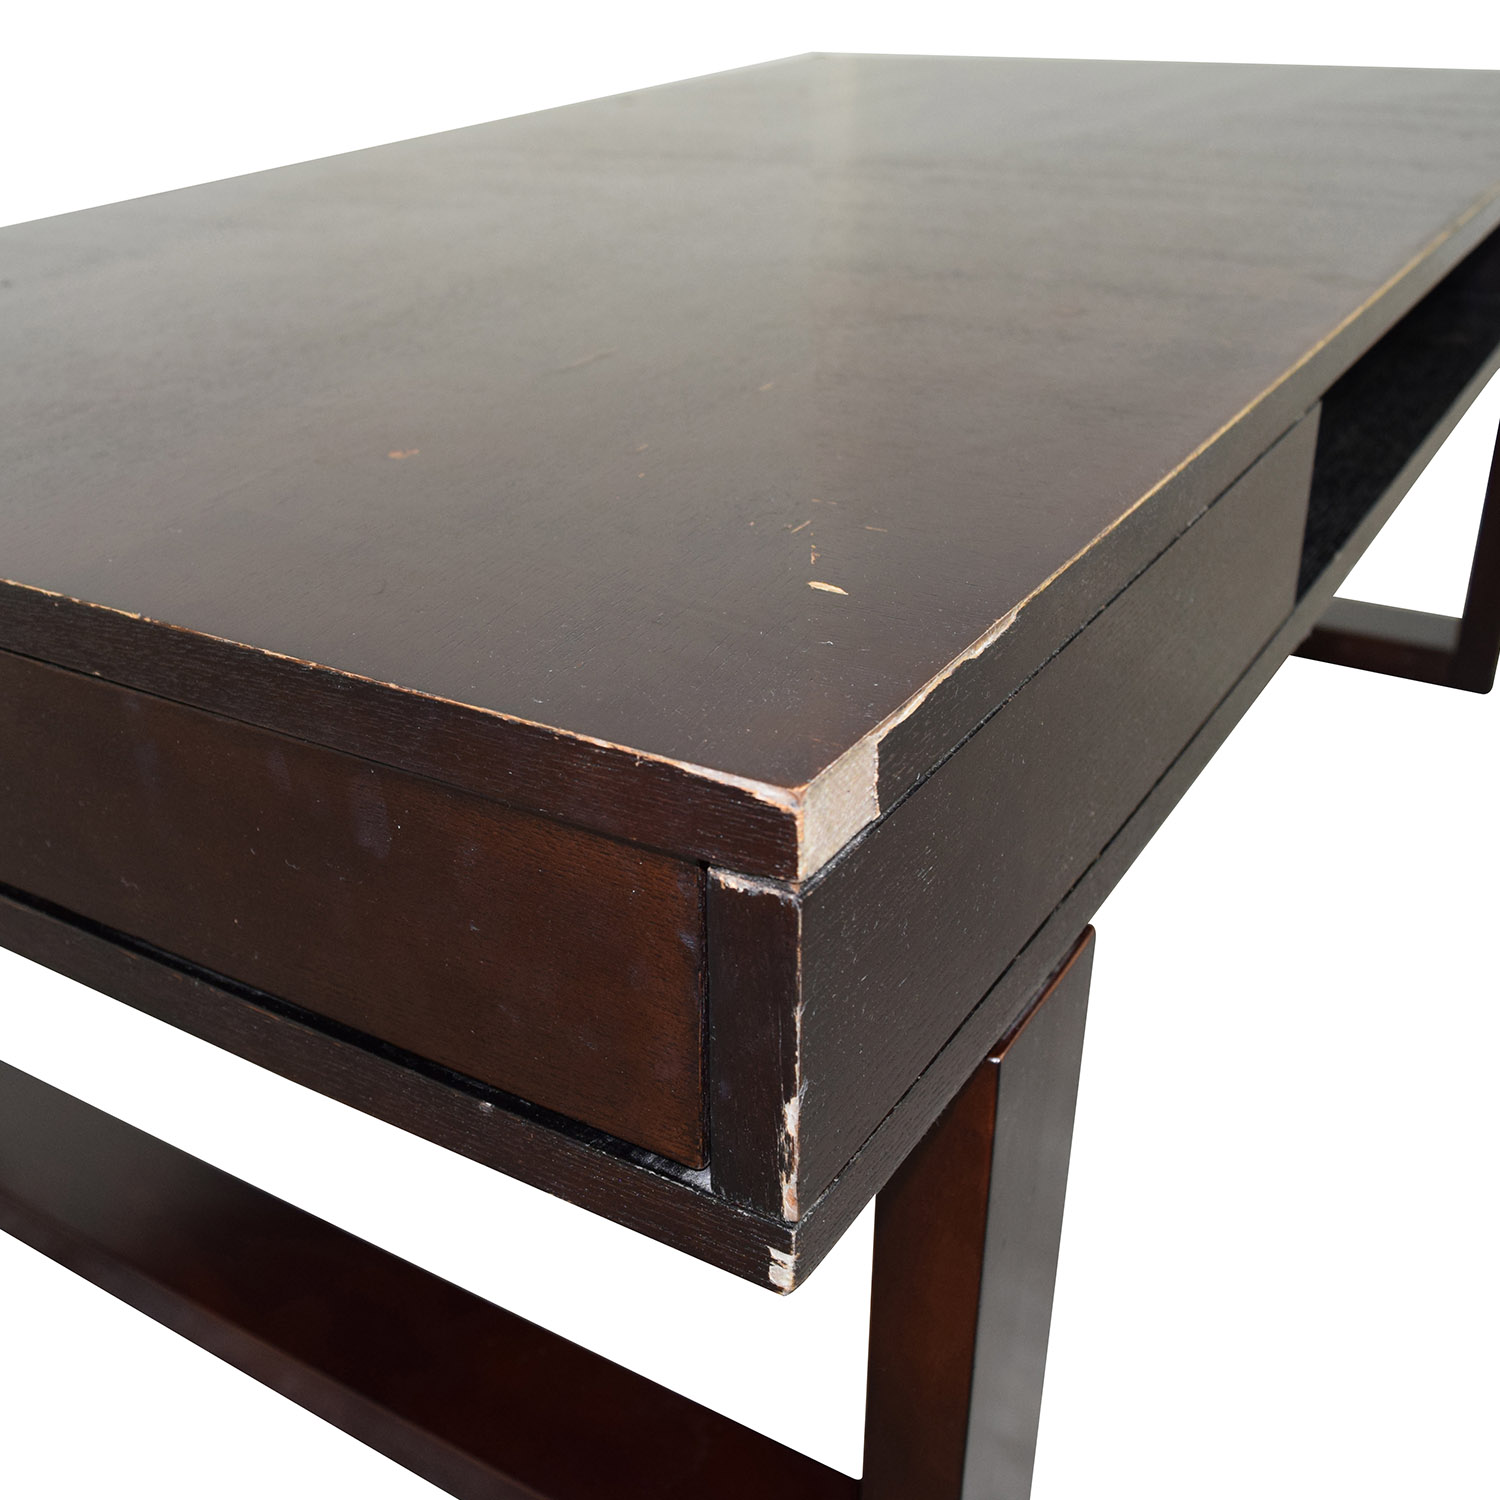 Brown Wood Coffee Table with Side Drawers dimensions